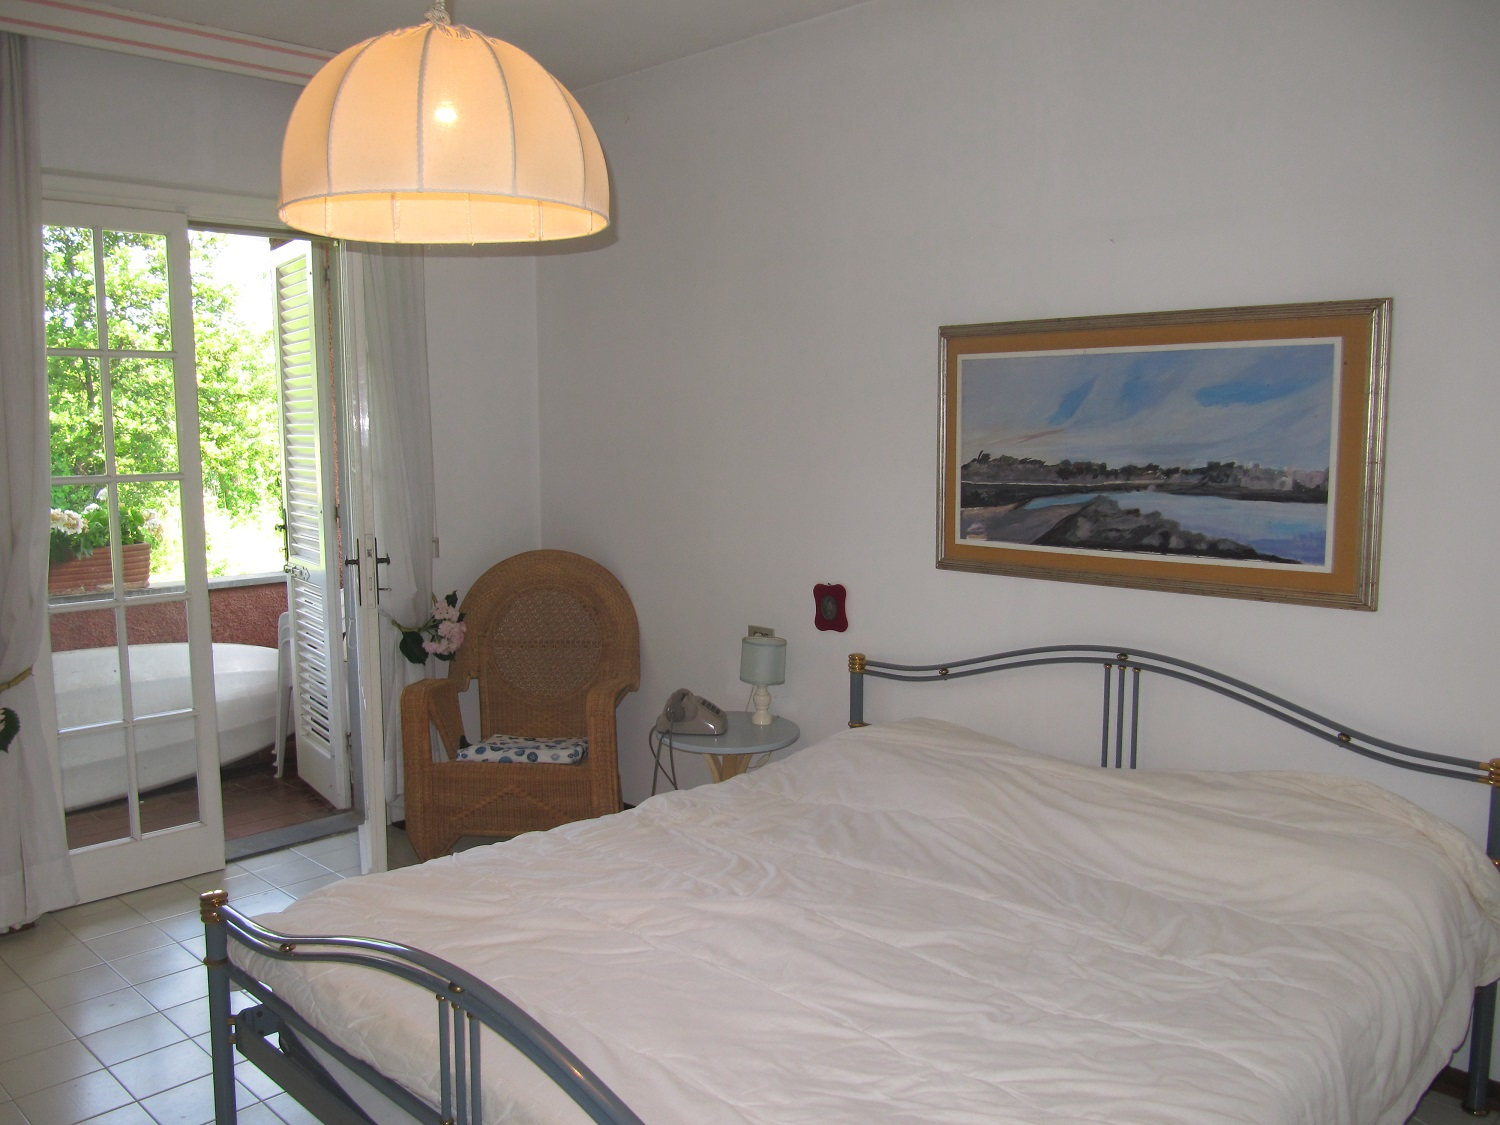 holiday-villa-forte-dei-marmi-king-size-bed.JPG